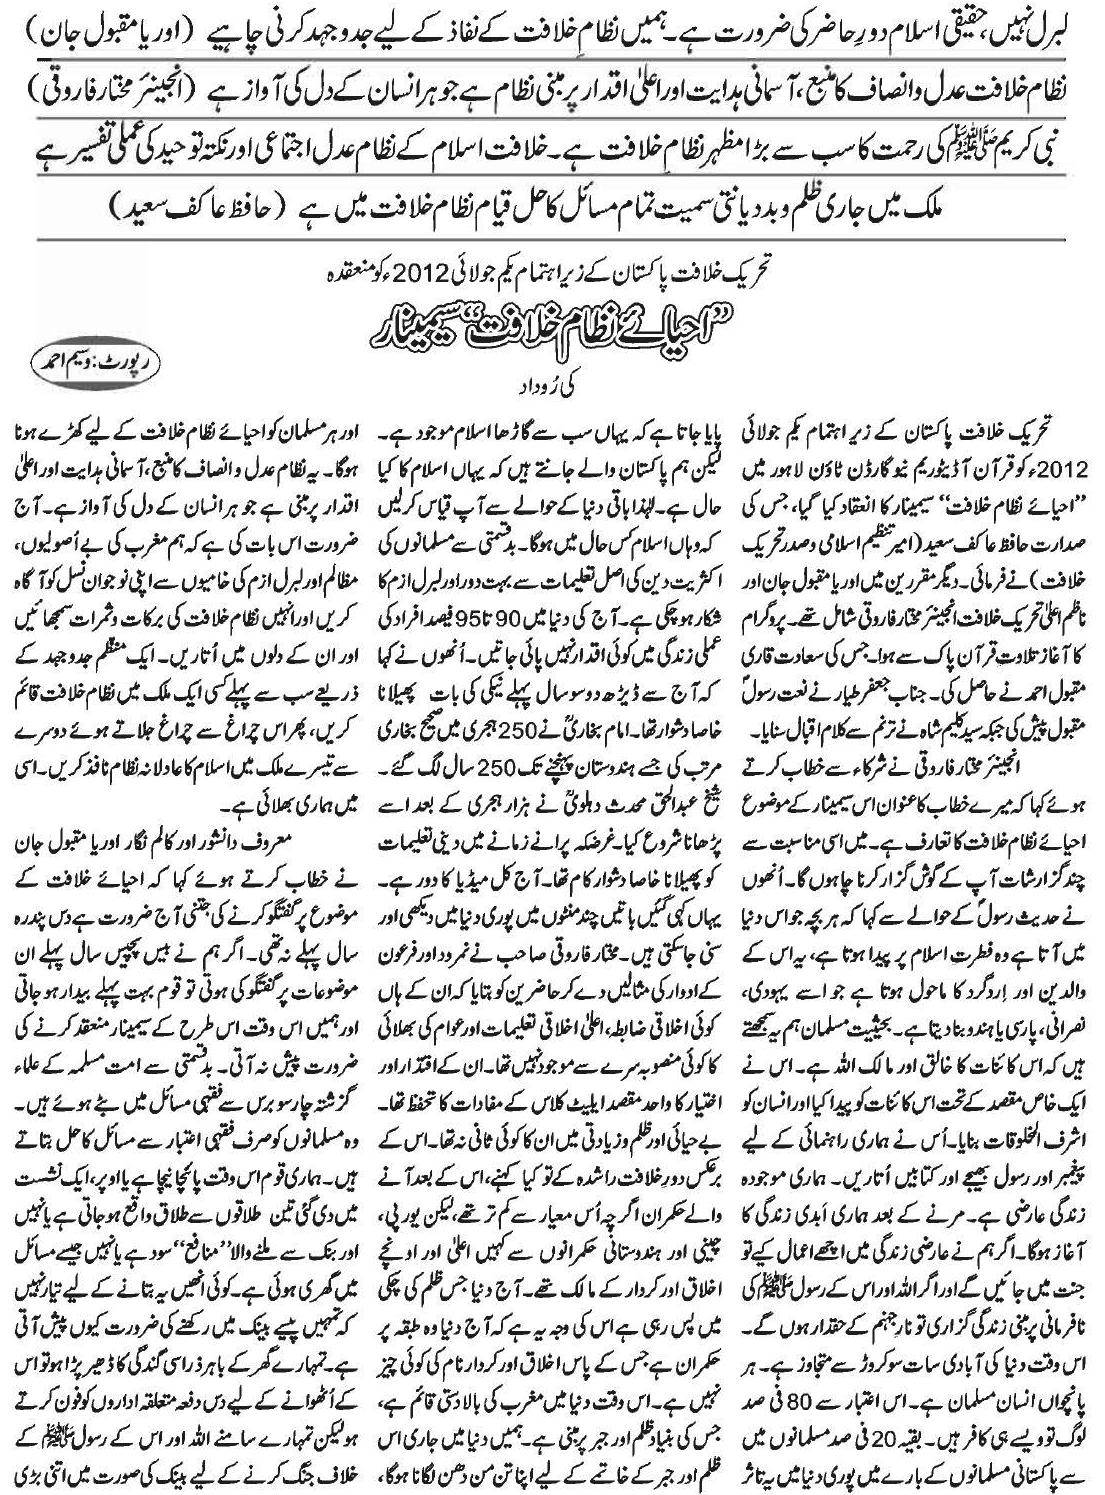 democracy essay in urdu language So as there is democracy in pakistan which states equal  was the first prime minister of pakistan the urdu language was a common connecting.